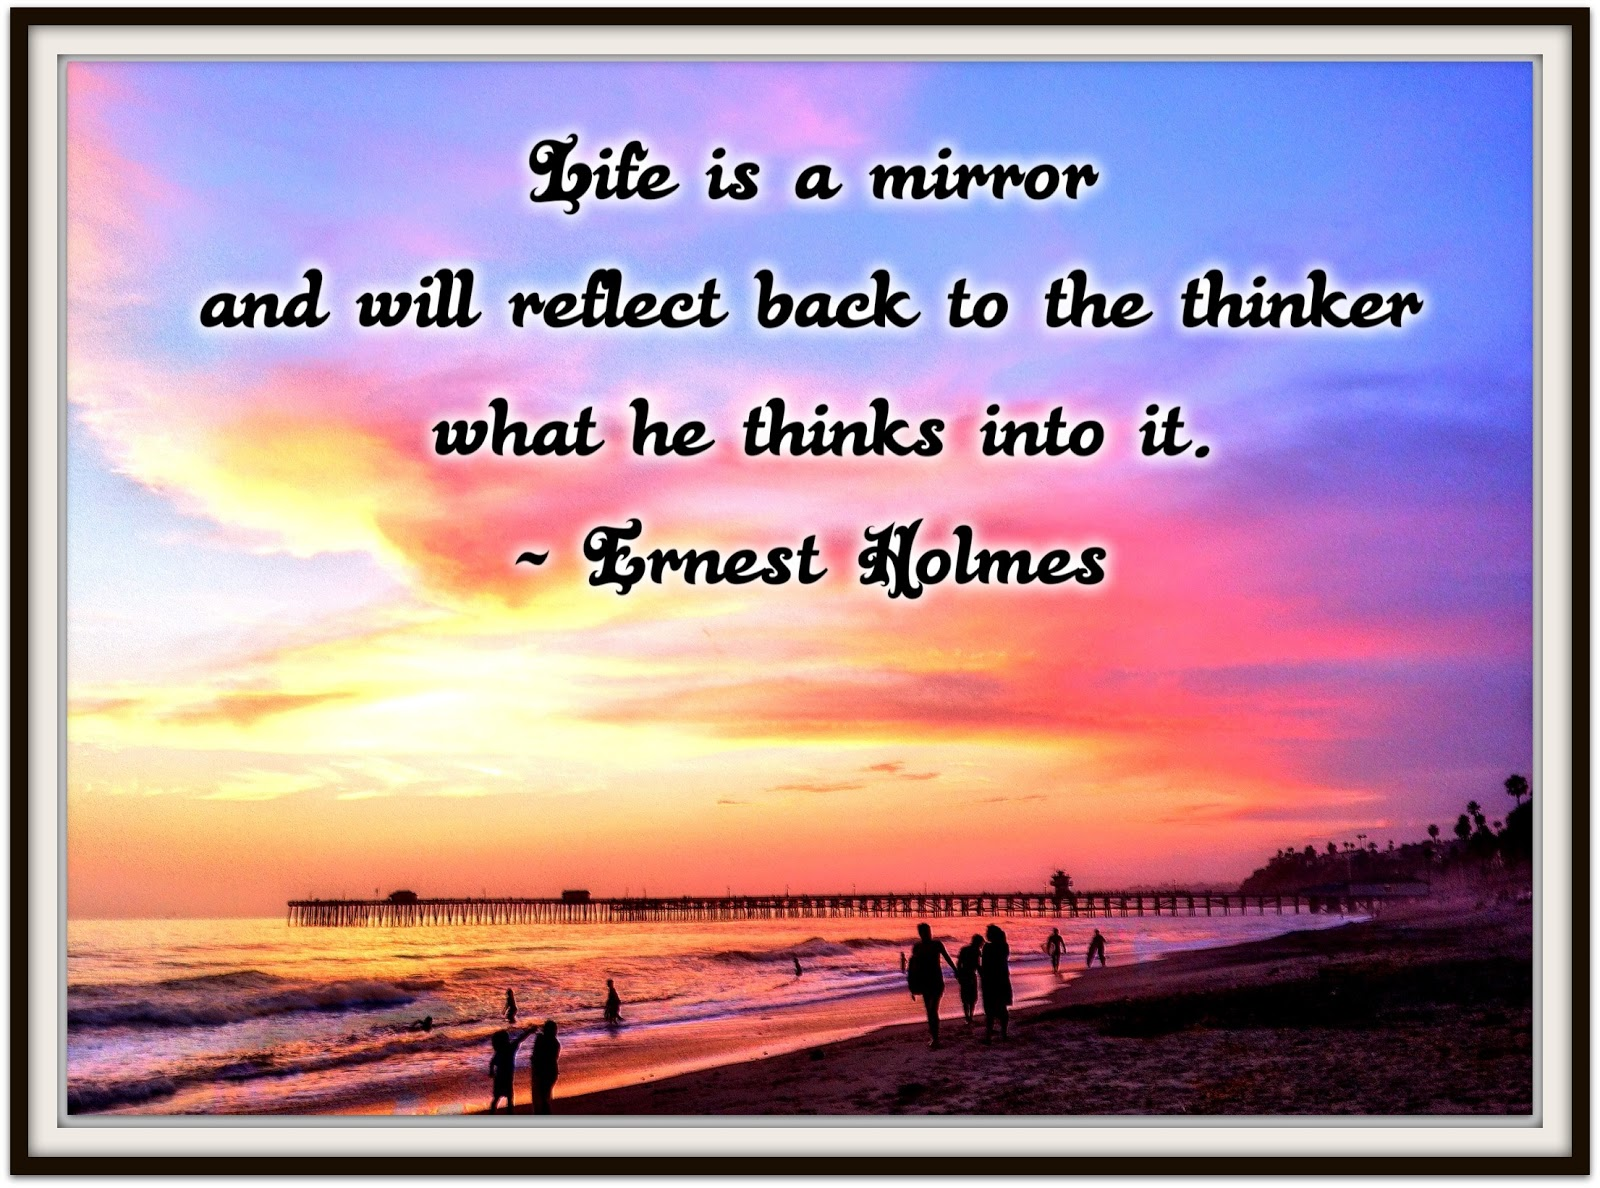 Life is a mirror and will reflect back to the thinker what he thinks into it. ~ Ernest Holmes